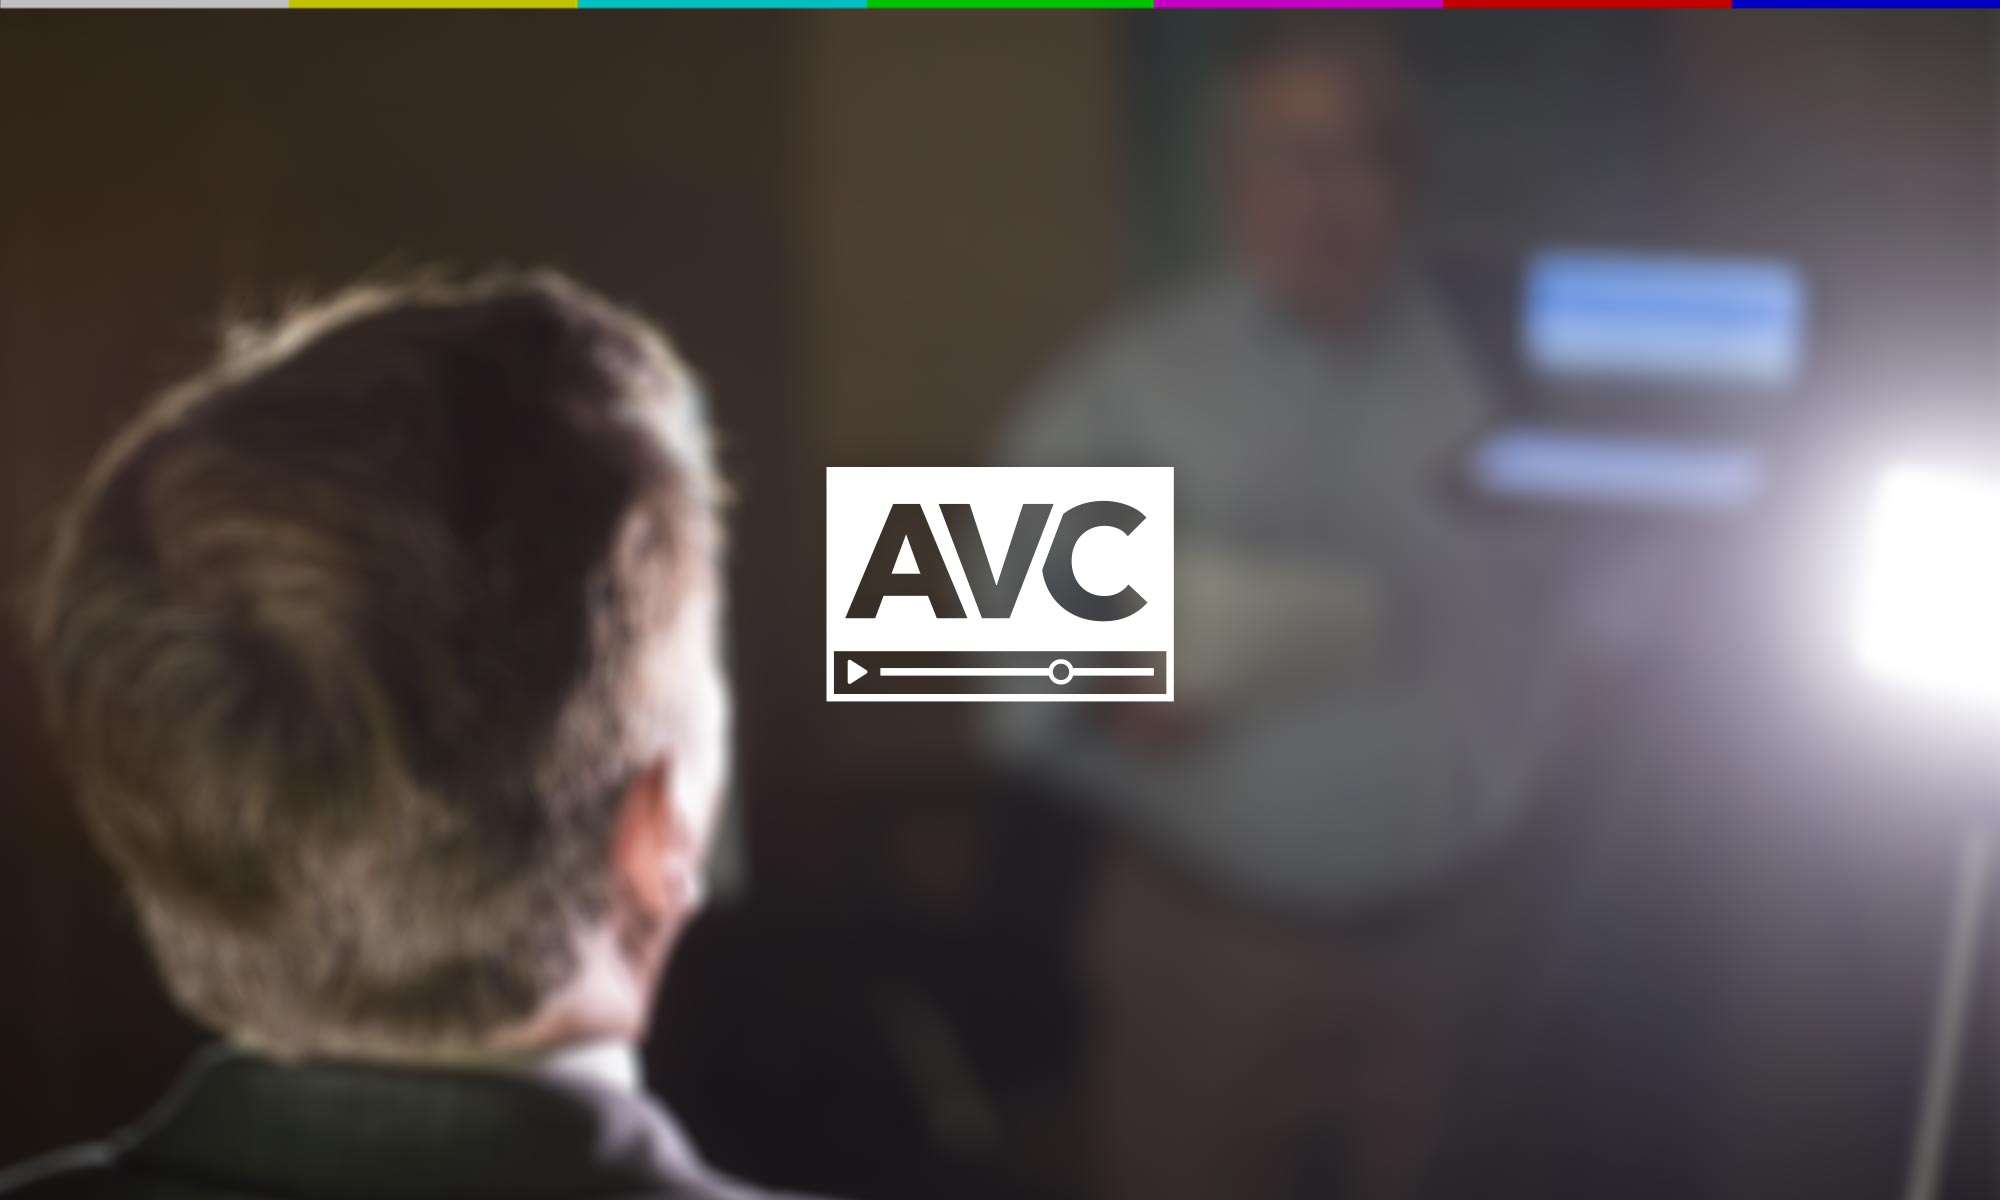 AVC - Affordable Video Content